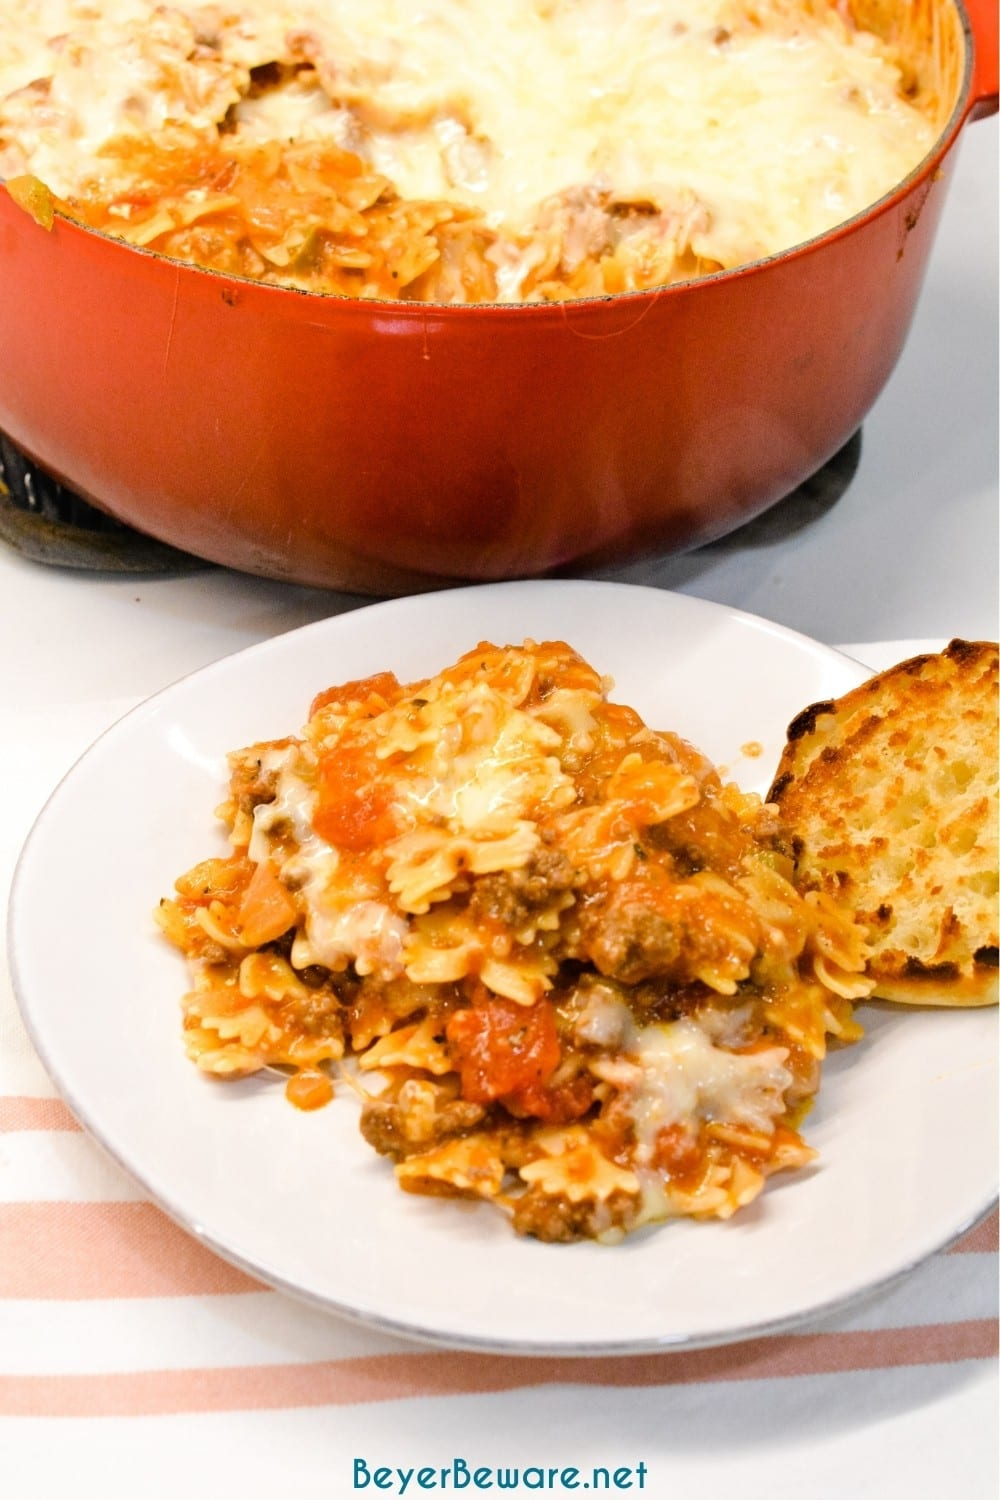 Speedy Skillet lasagna is a quick lasagna recipe with all the traditional flavors but will be on the table in less than 30 minutes to fill up your hungry family.